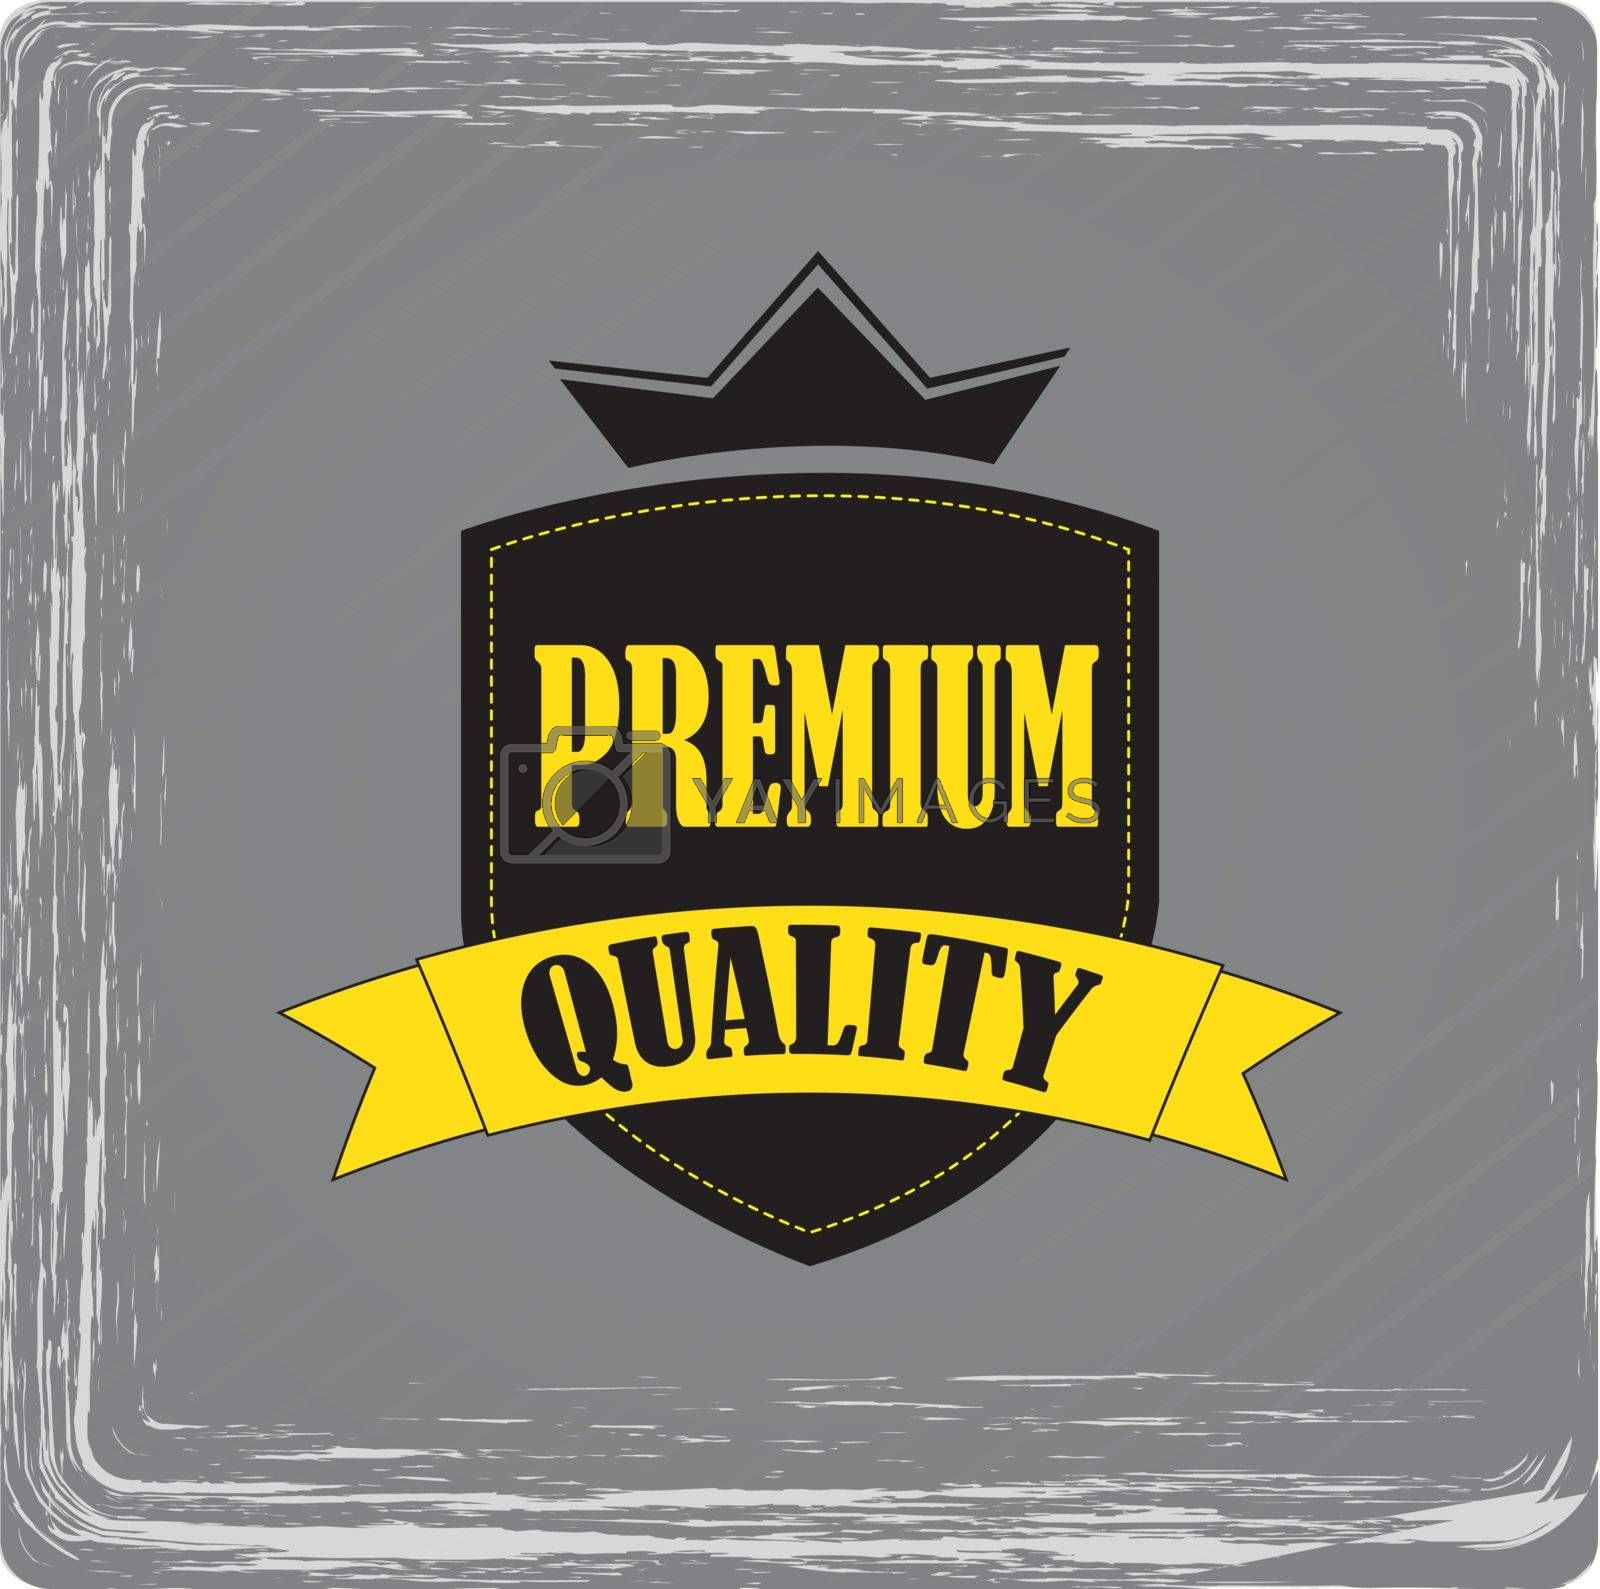 seal stamp premium quality over gray background